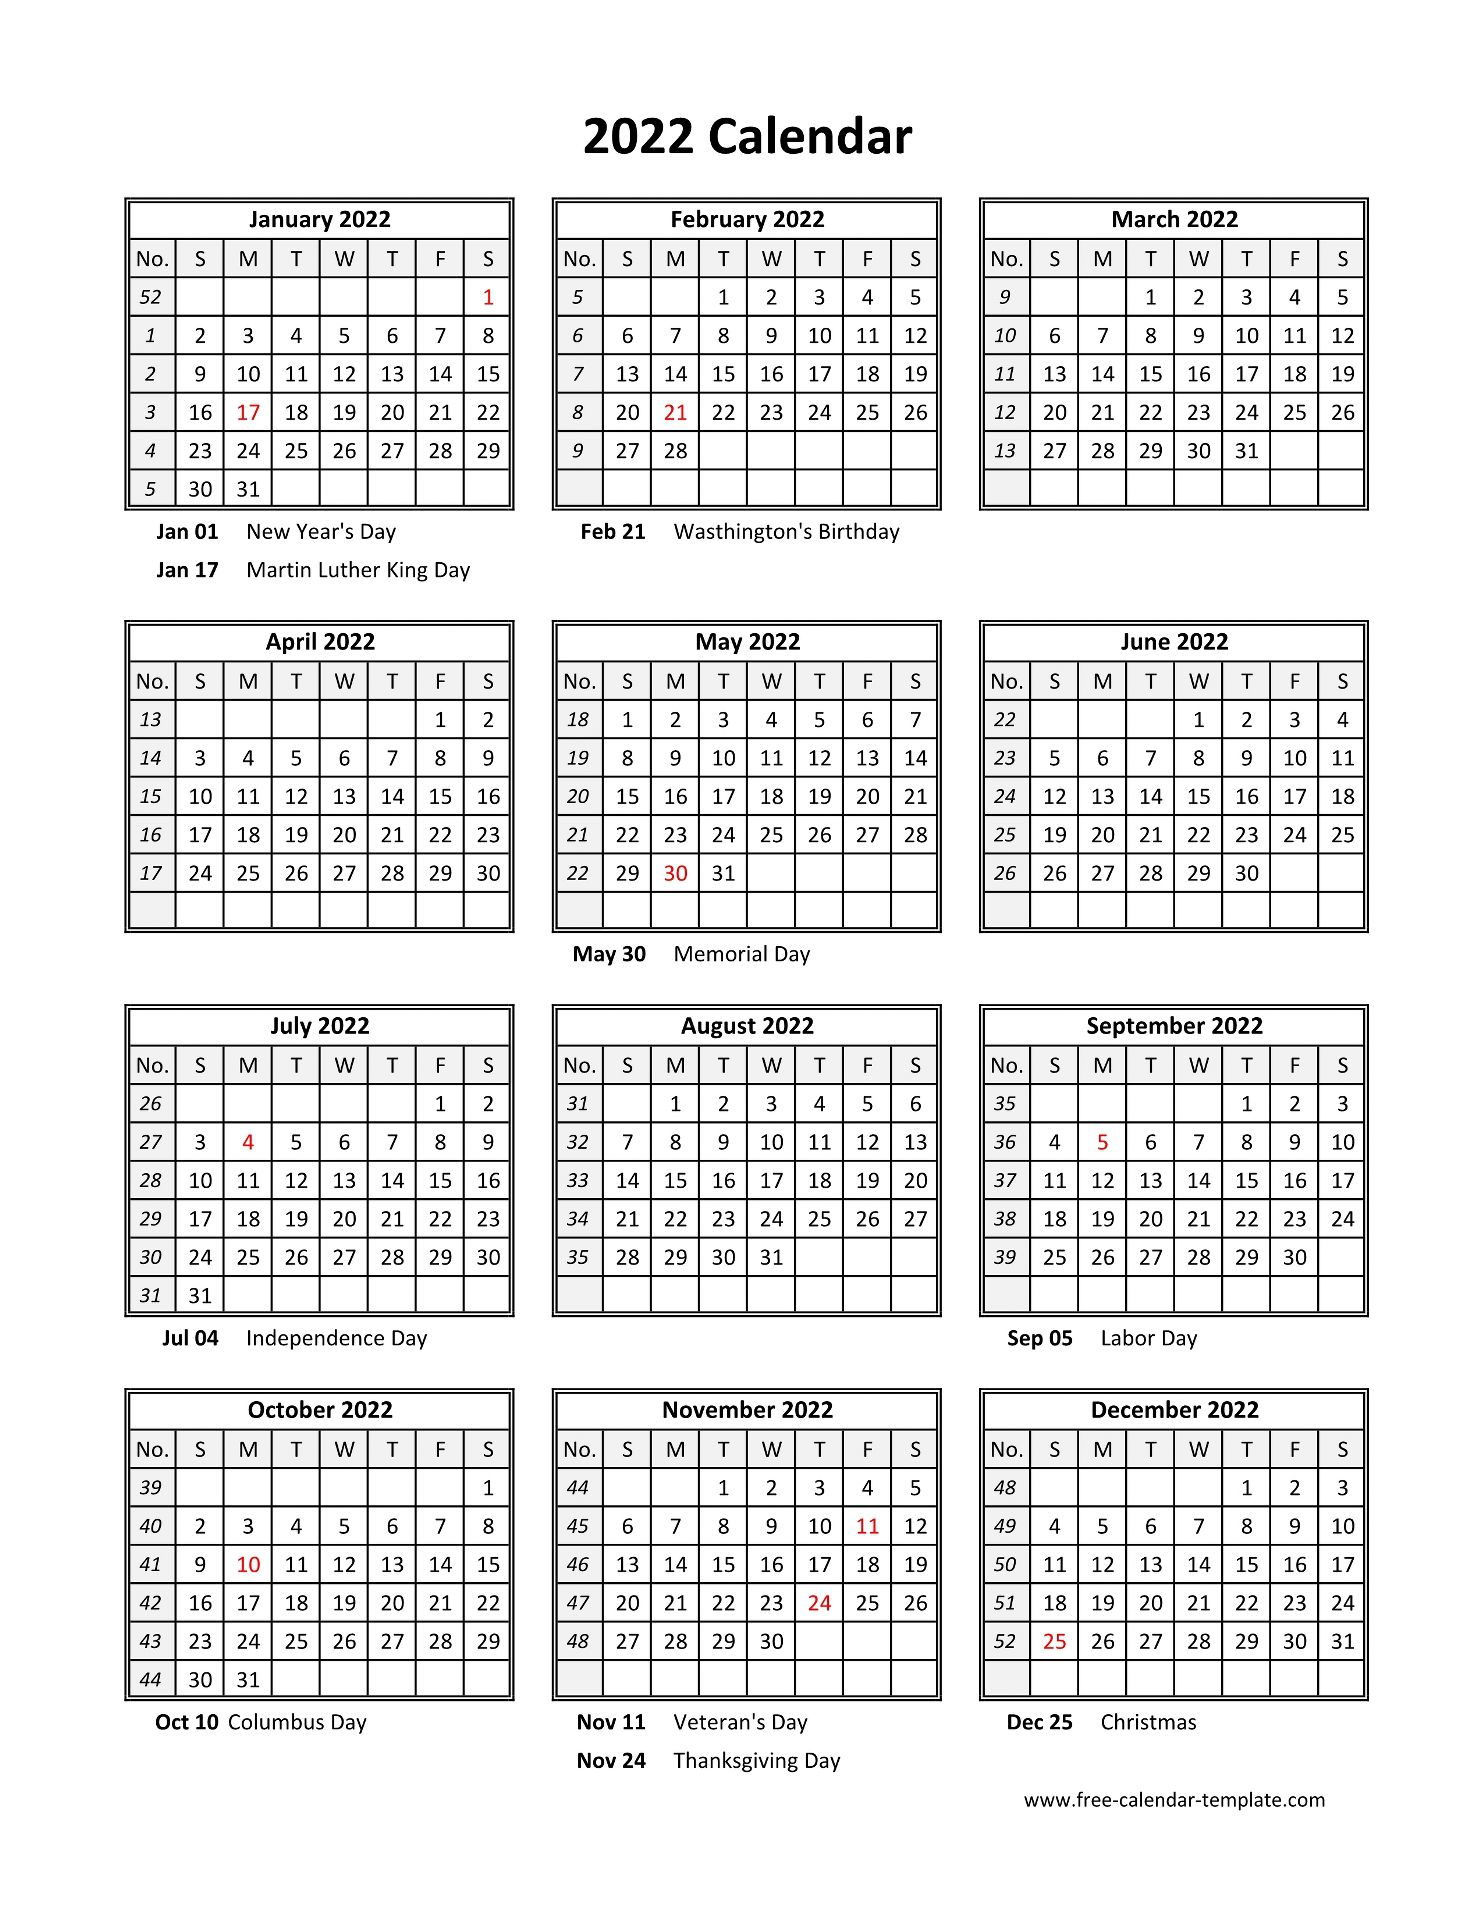 Yearly printable calendar 2022 with holidays | Free ...